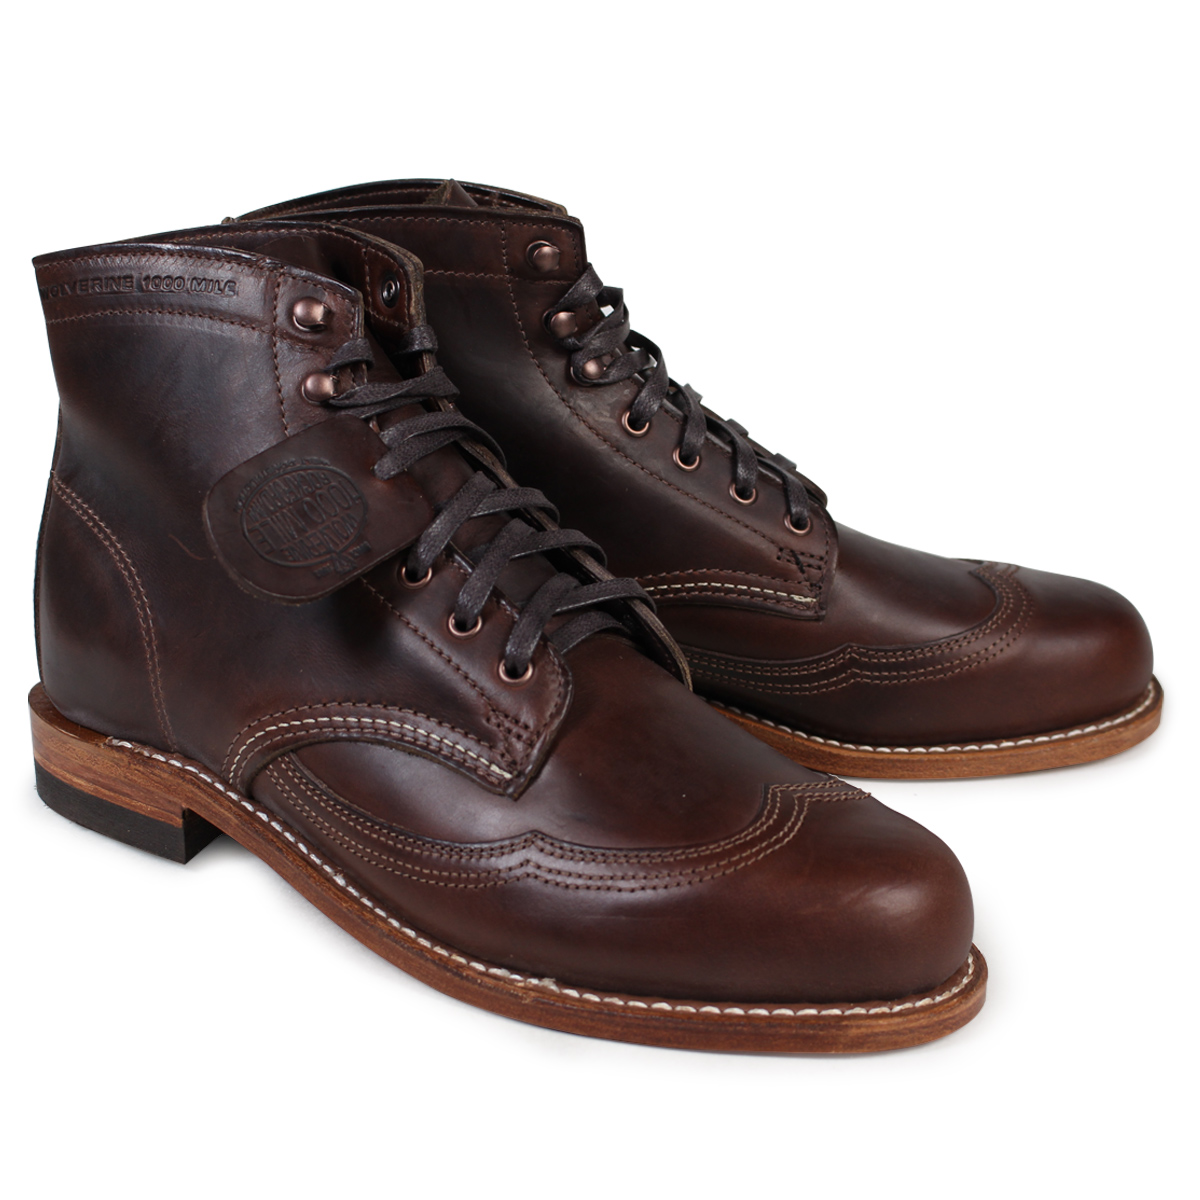 Forum on this topic: Men's Wolverine Addison 1000 Mile Wingtip Boots , mens-wolverine-addison-1000-mile-wingtip-boots/